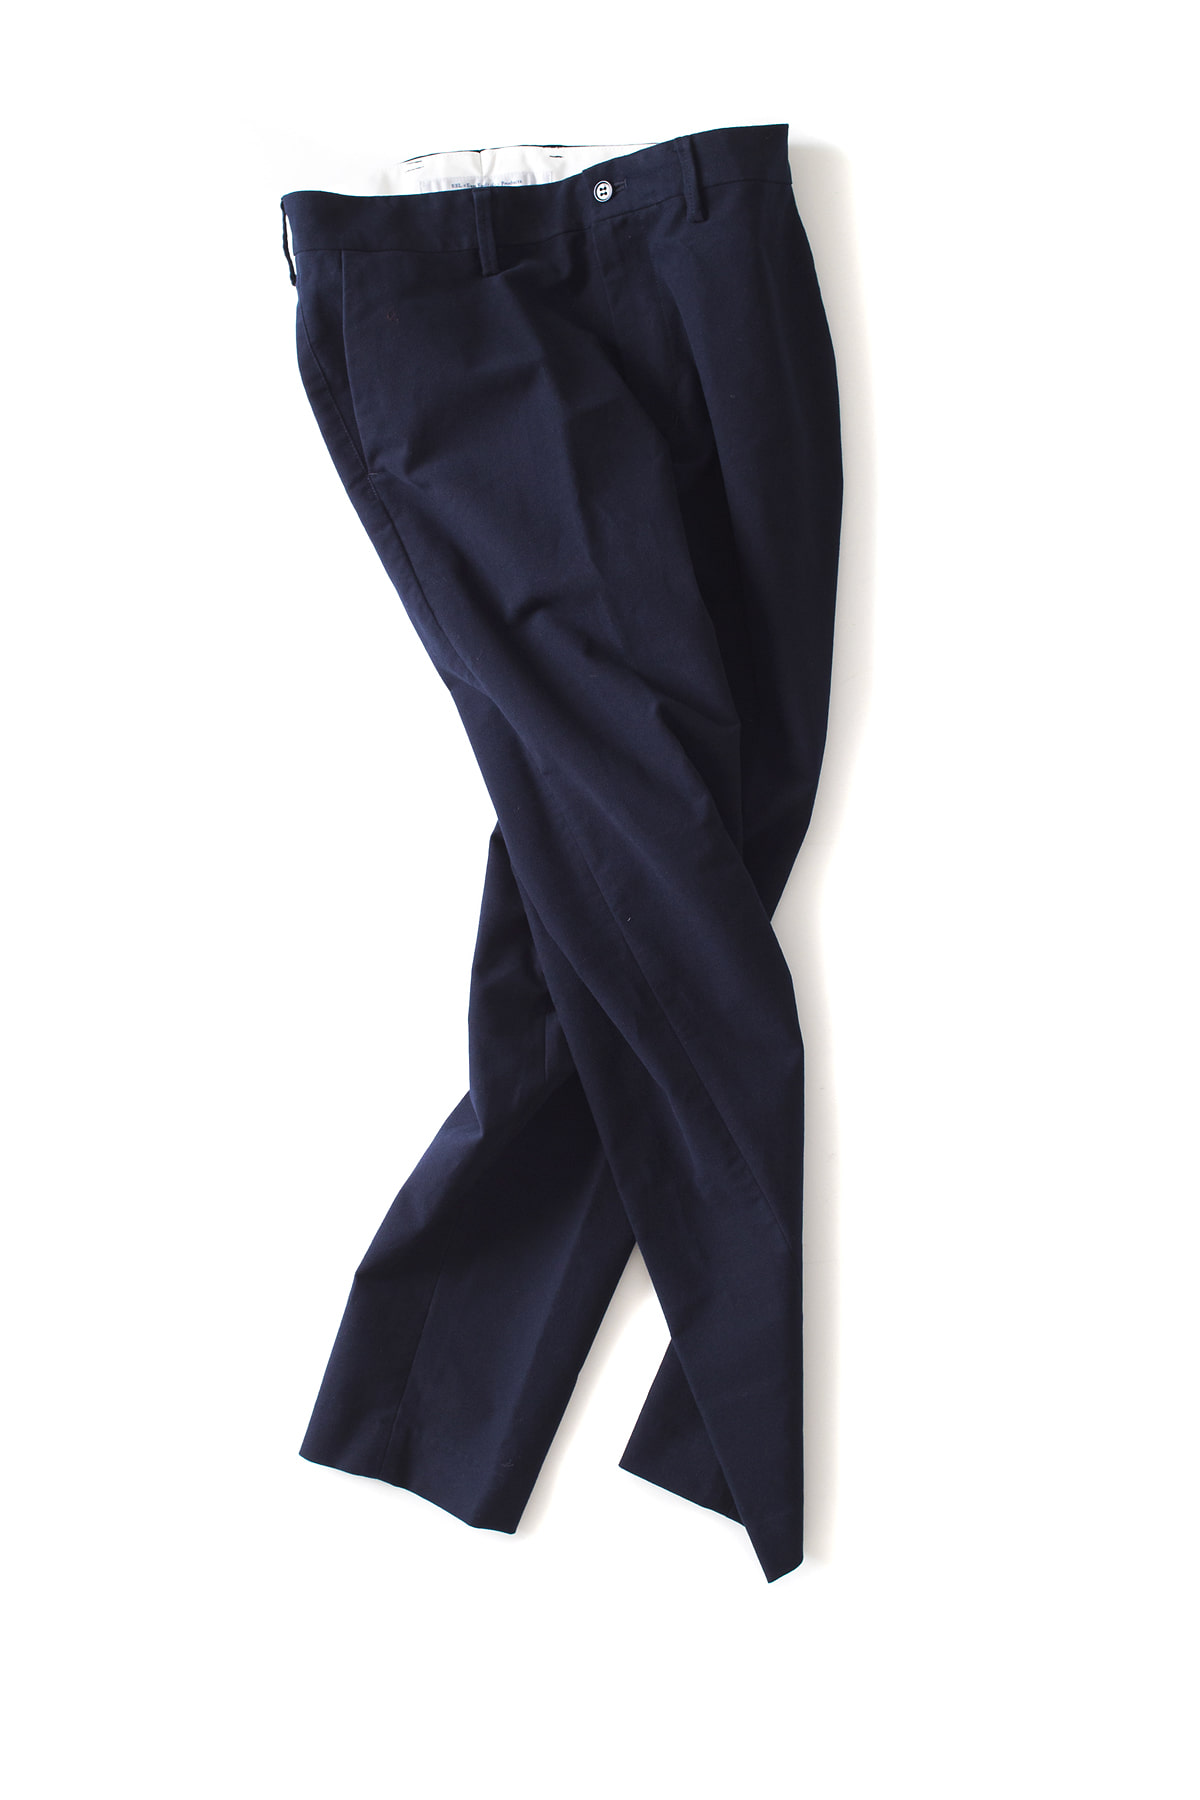 EEL : Monsieur Pants (Navy)